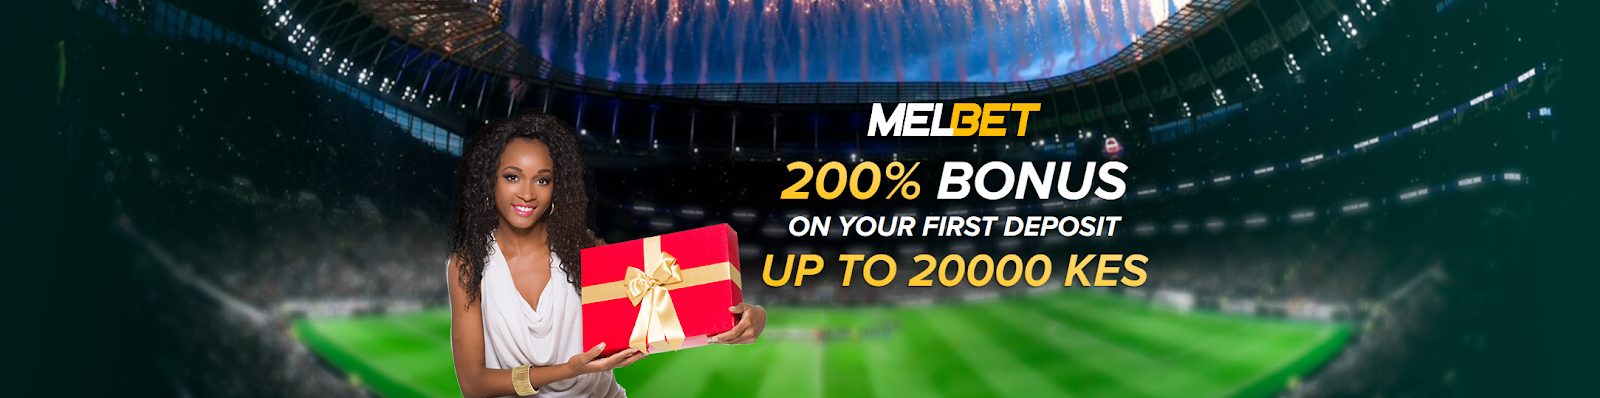 Melbet Kenya 200% Welcome Bonus